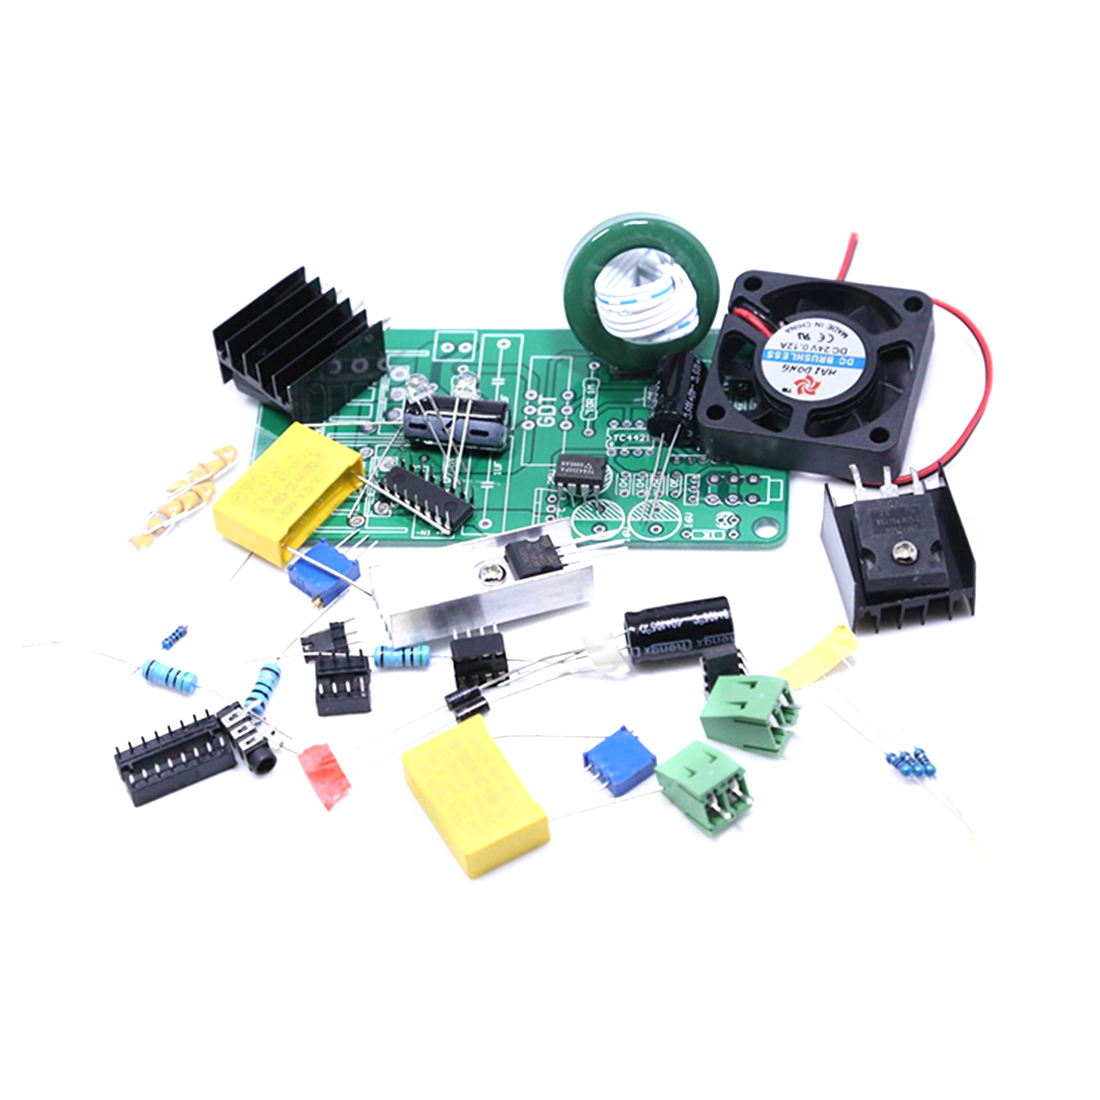 DIY Electronic Speaker Plasma Speaker Classic Tl494 Plasma Sound High Tech Programmable Accessories Kits - A Full Set Of Parts